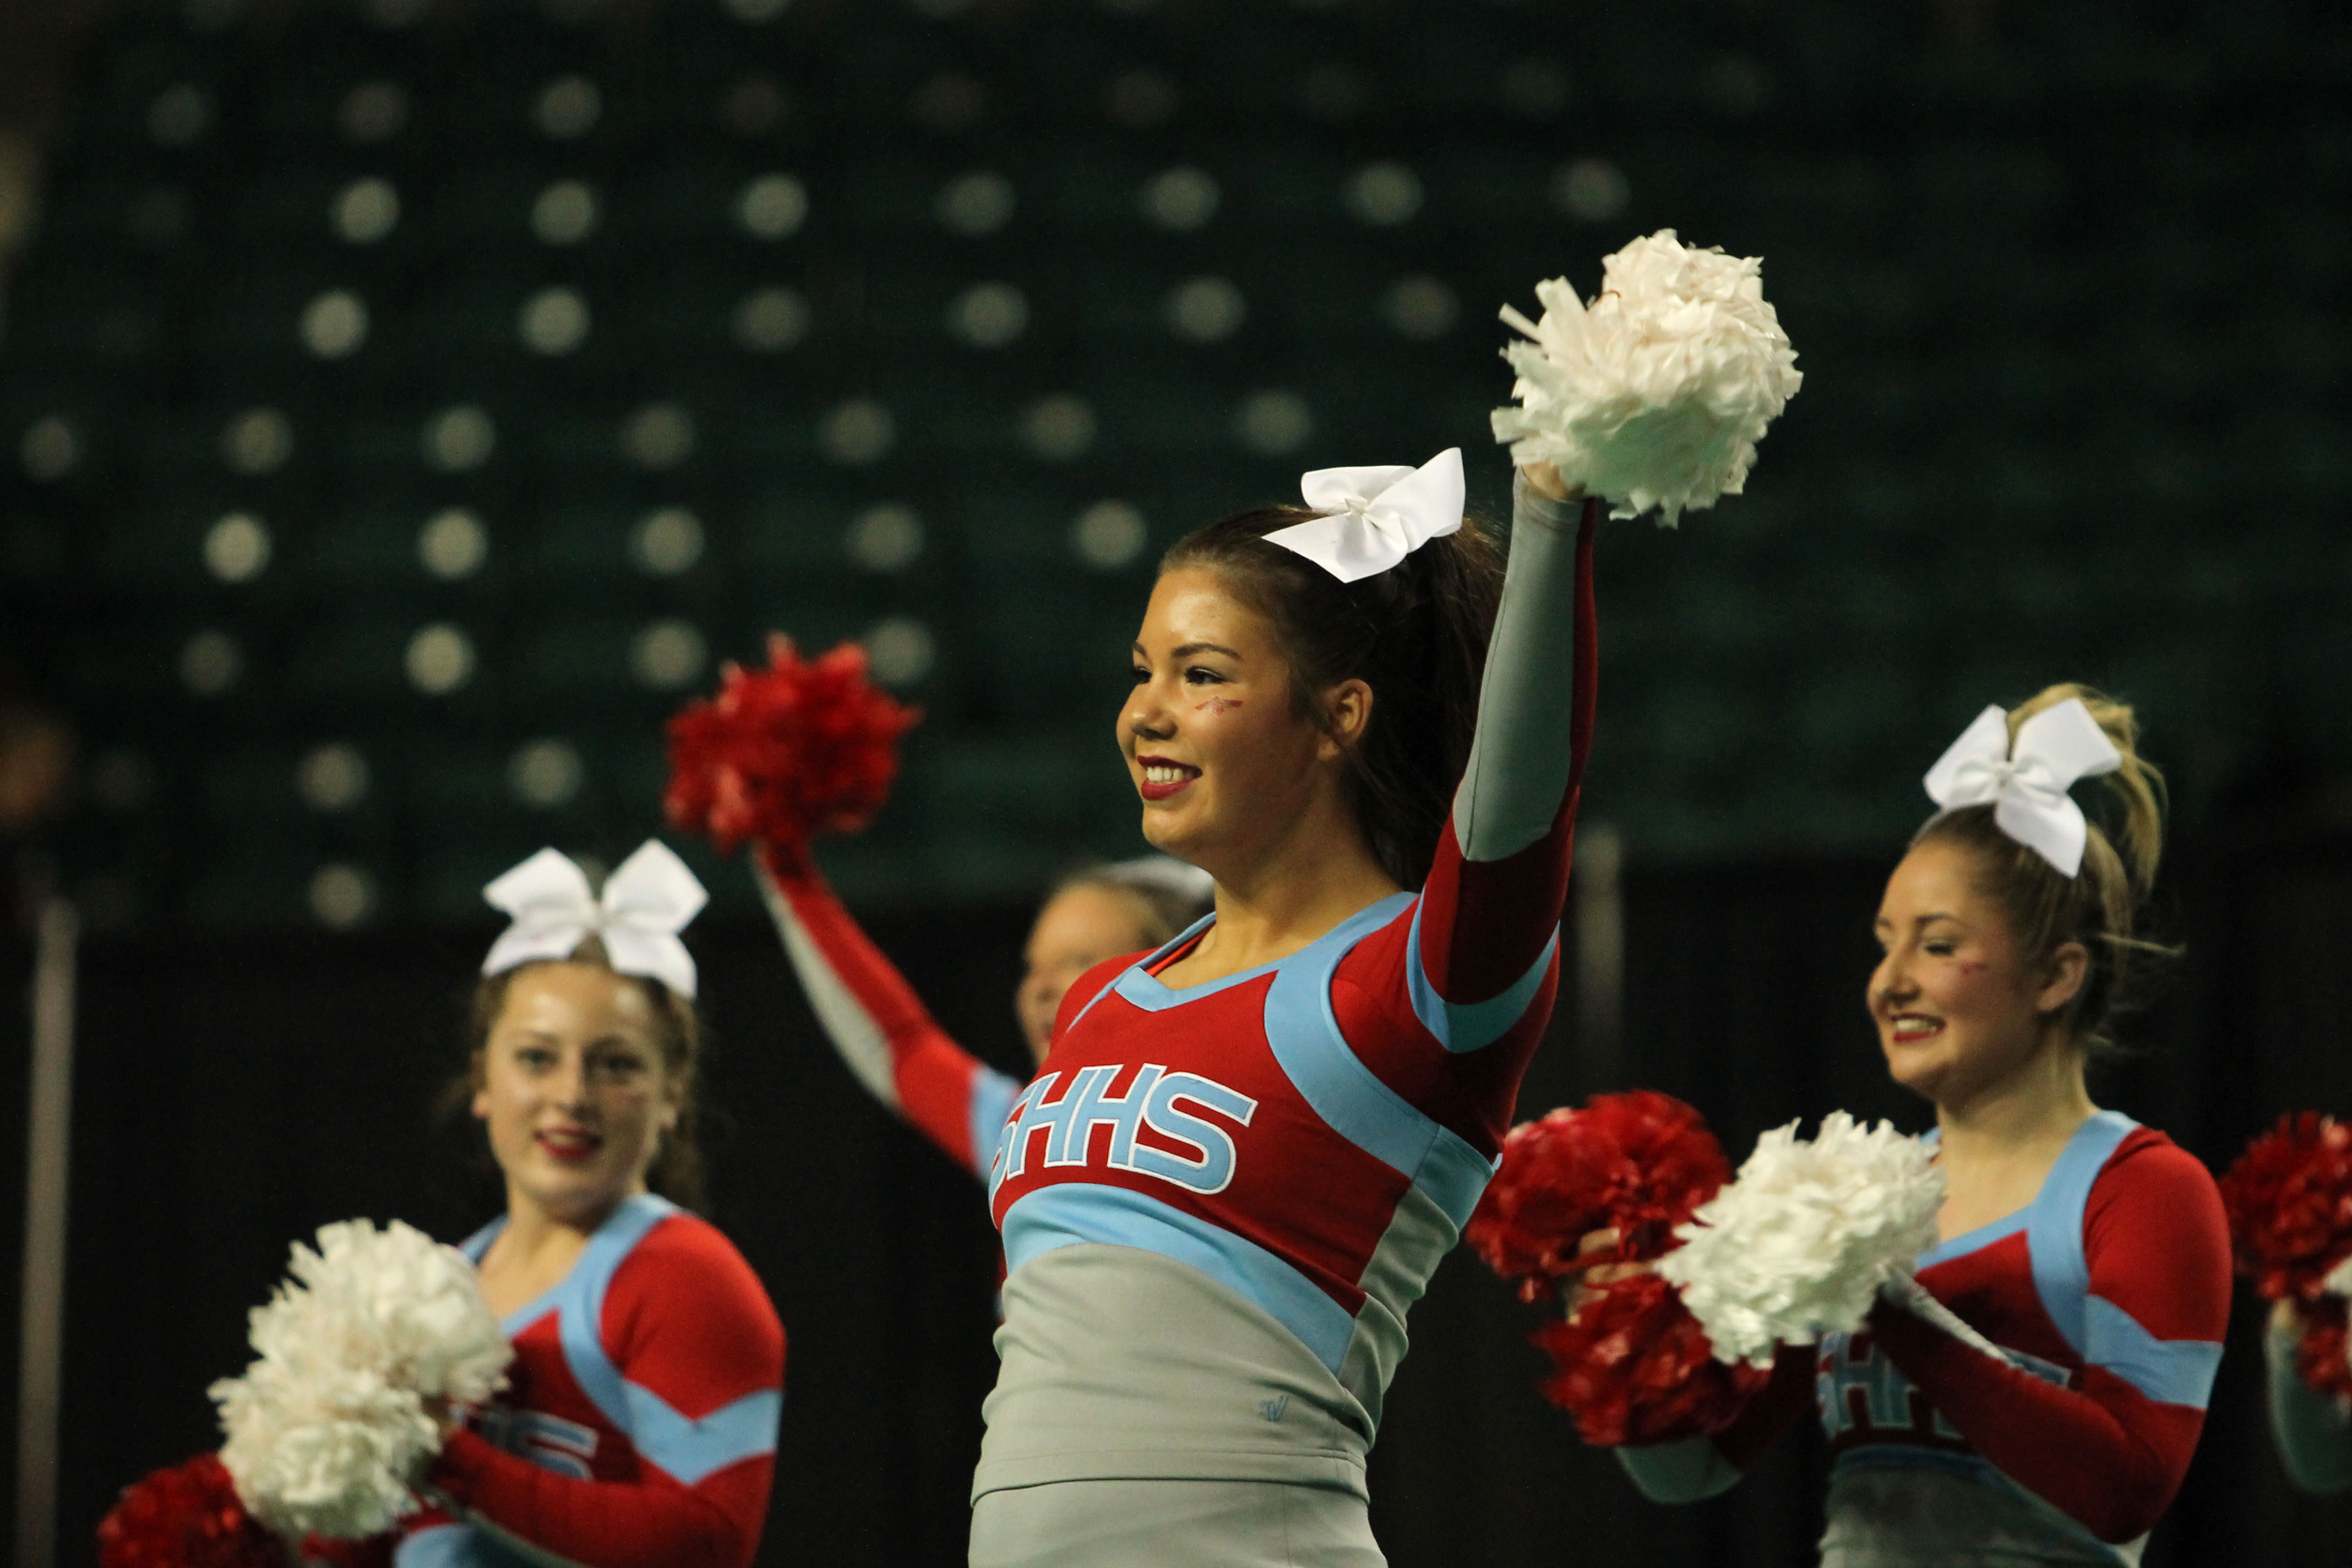 Cheer Wins Inaugural 5A State Championship Title